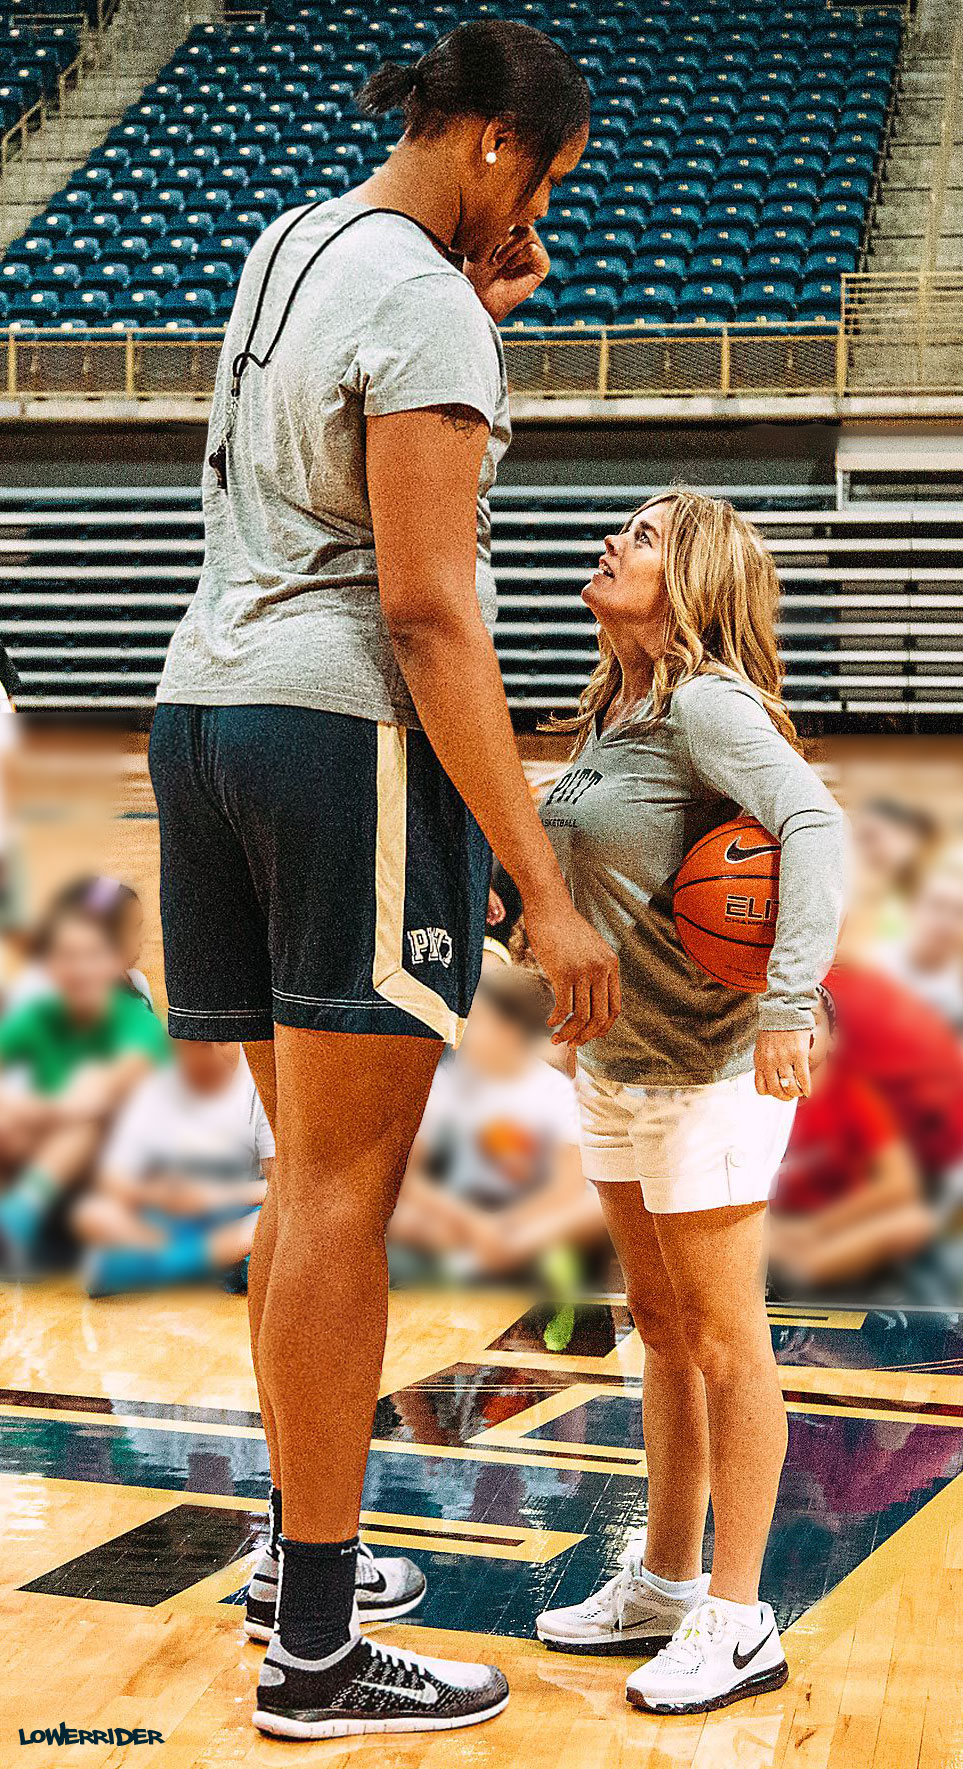 Who Is The Tallest Woman In The World 2016